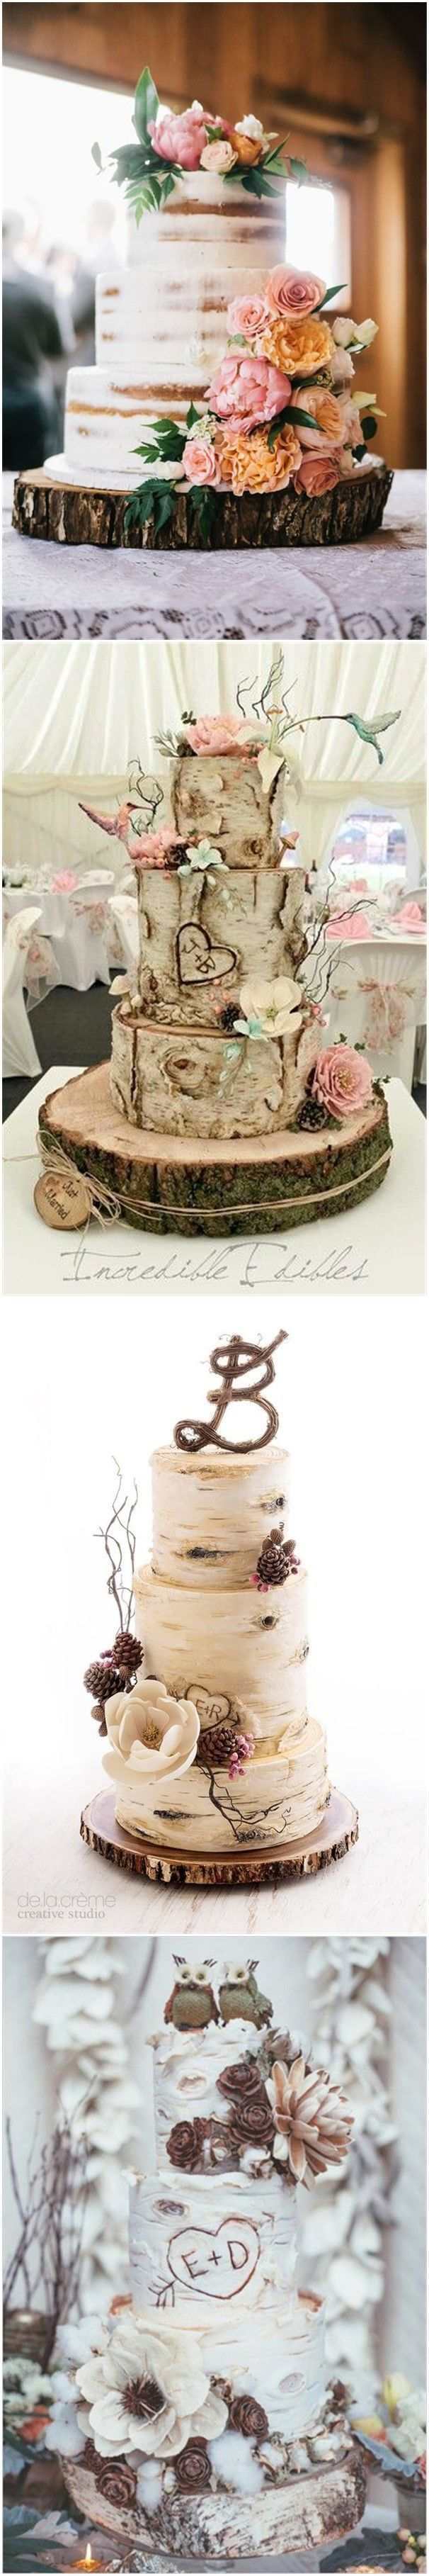 Country Weddings » 20 Rustic Tree Stumps Wedding Cakes for Your Country Wedding » ❤️ See more: http://www.weddinginclude.com/2017/06/rustic-tree-stumps-wedding-cakes-for-your-country-wedding/ #weddingcakes #countryweddingcakes